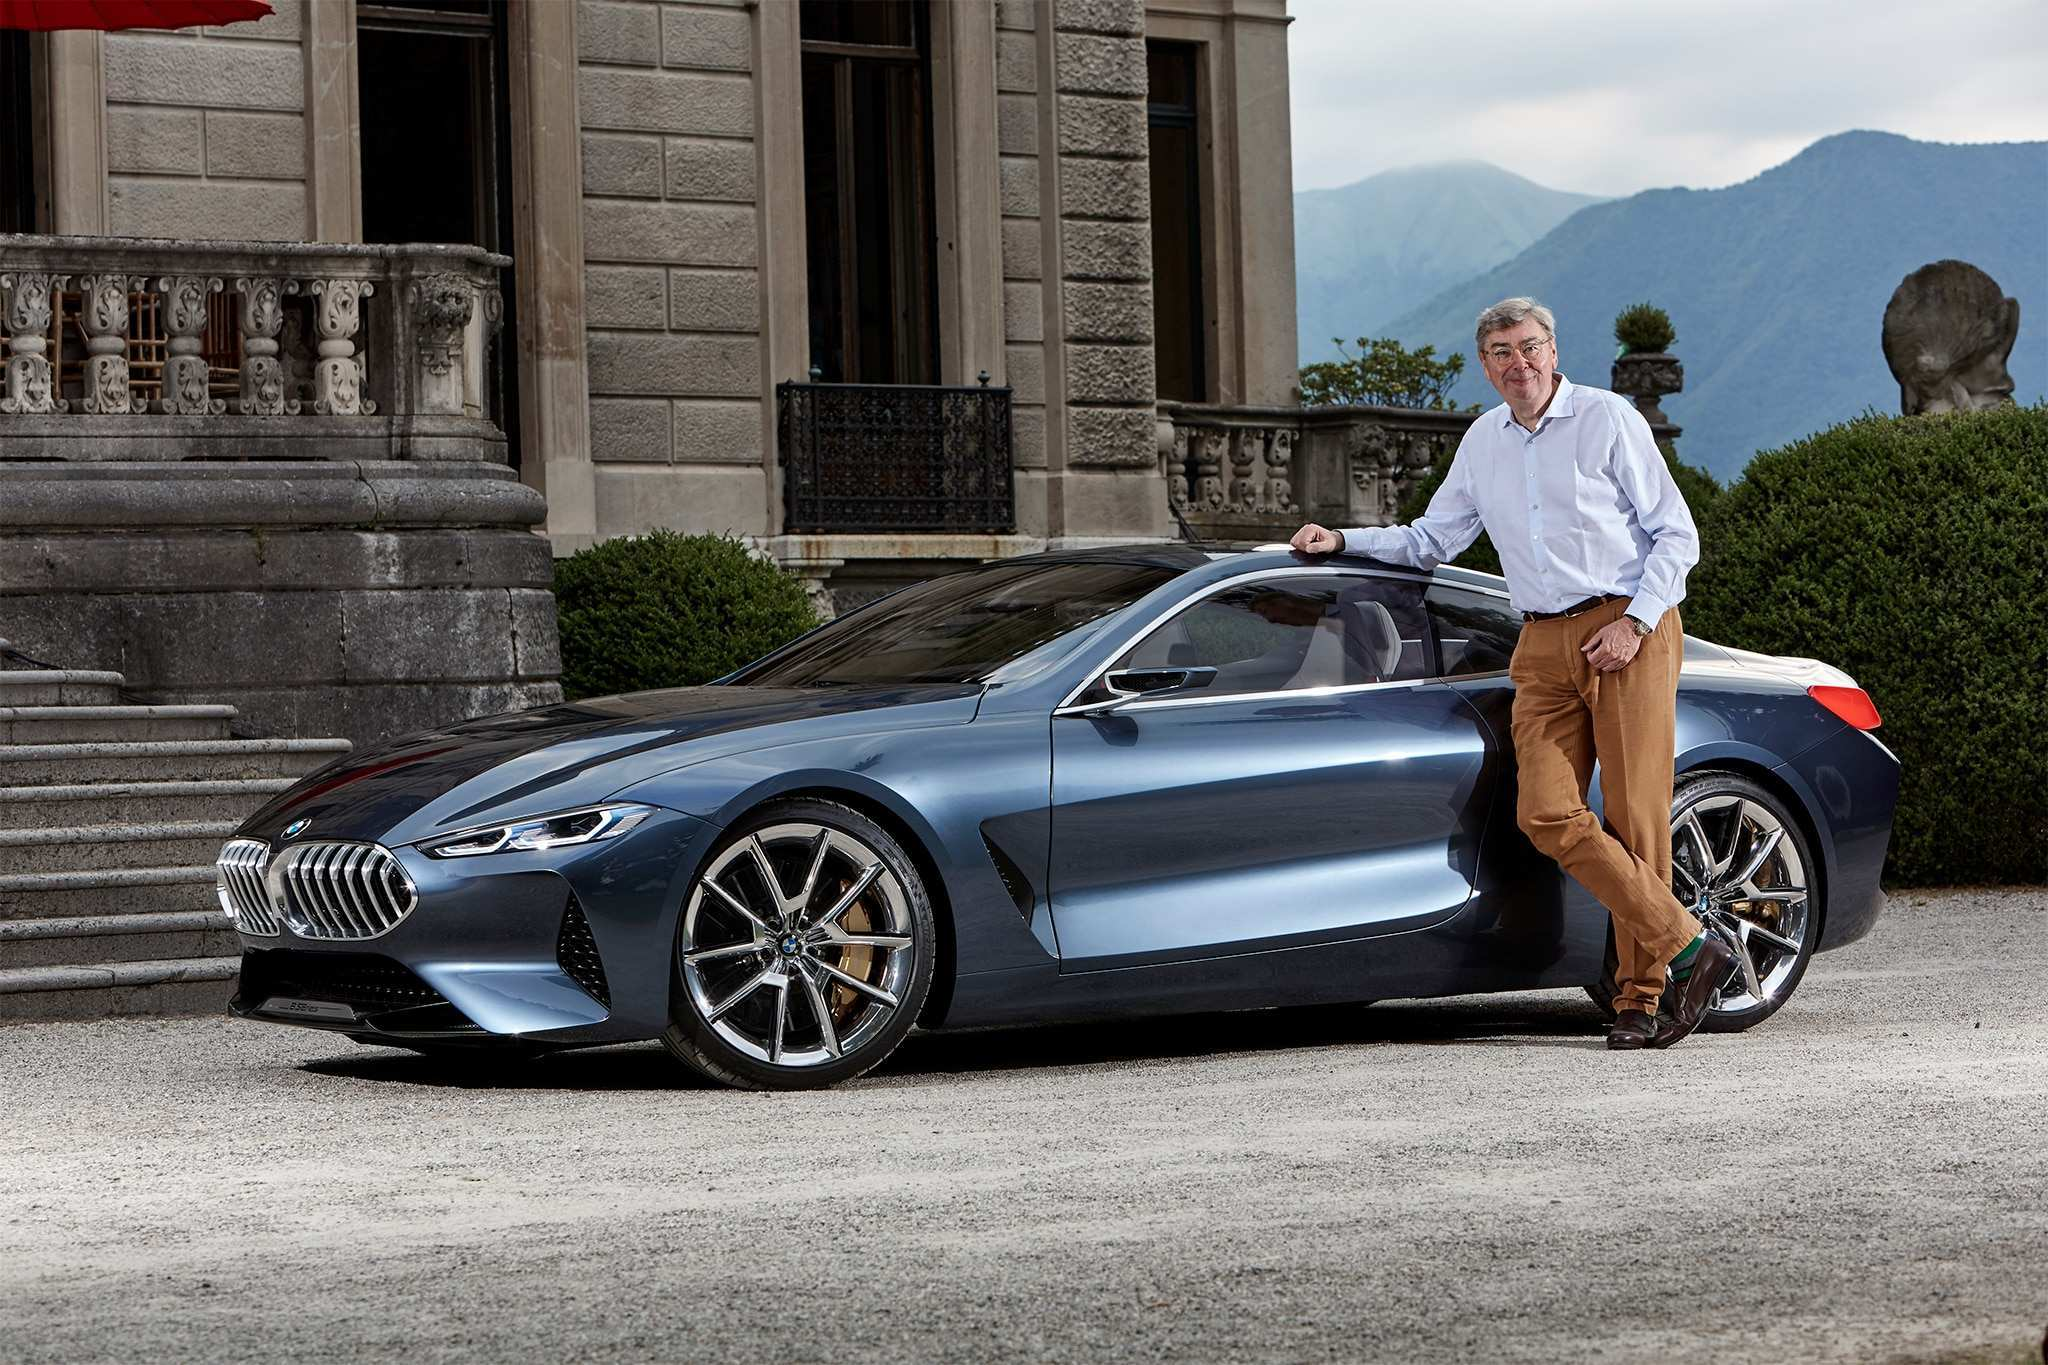 22 All New 2020 Bmw 8 Series Price Release